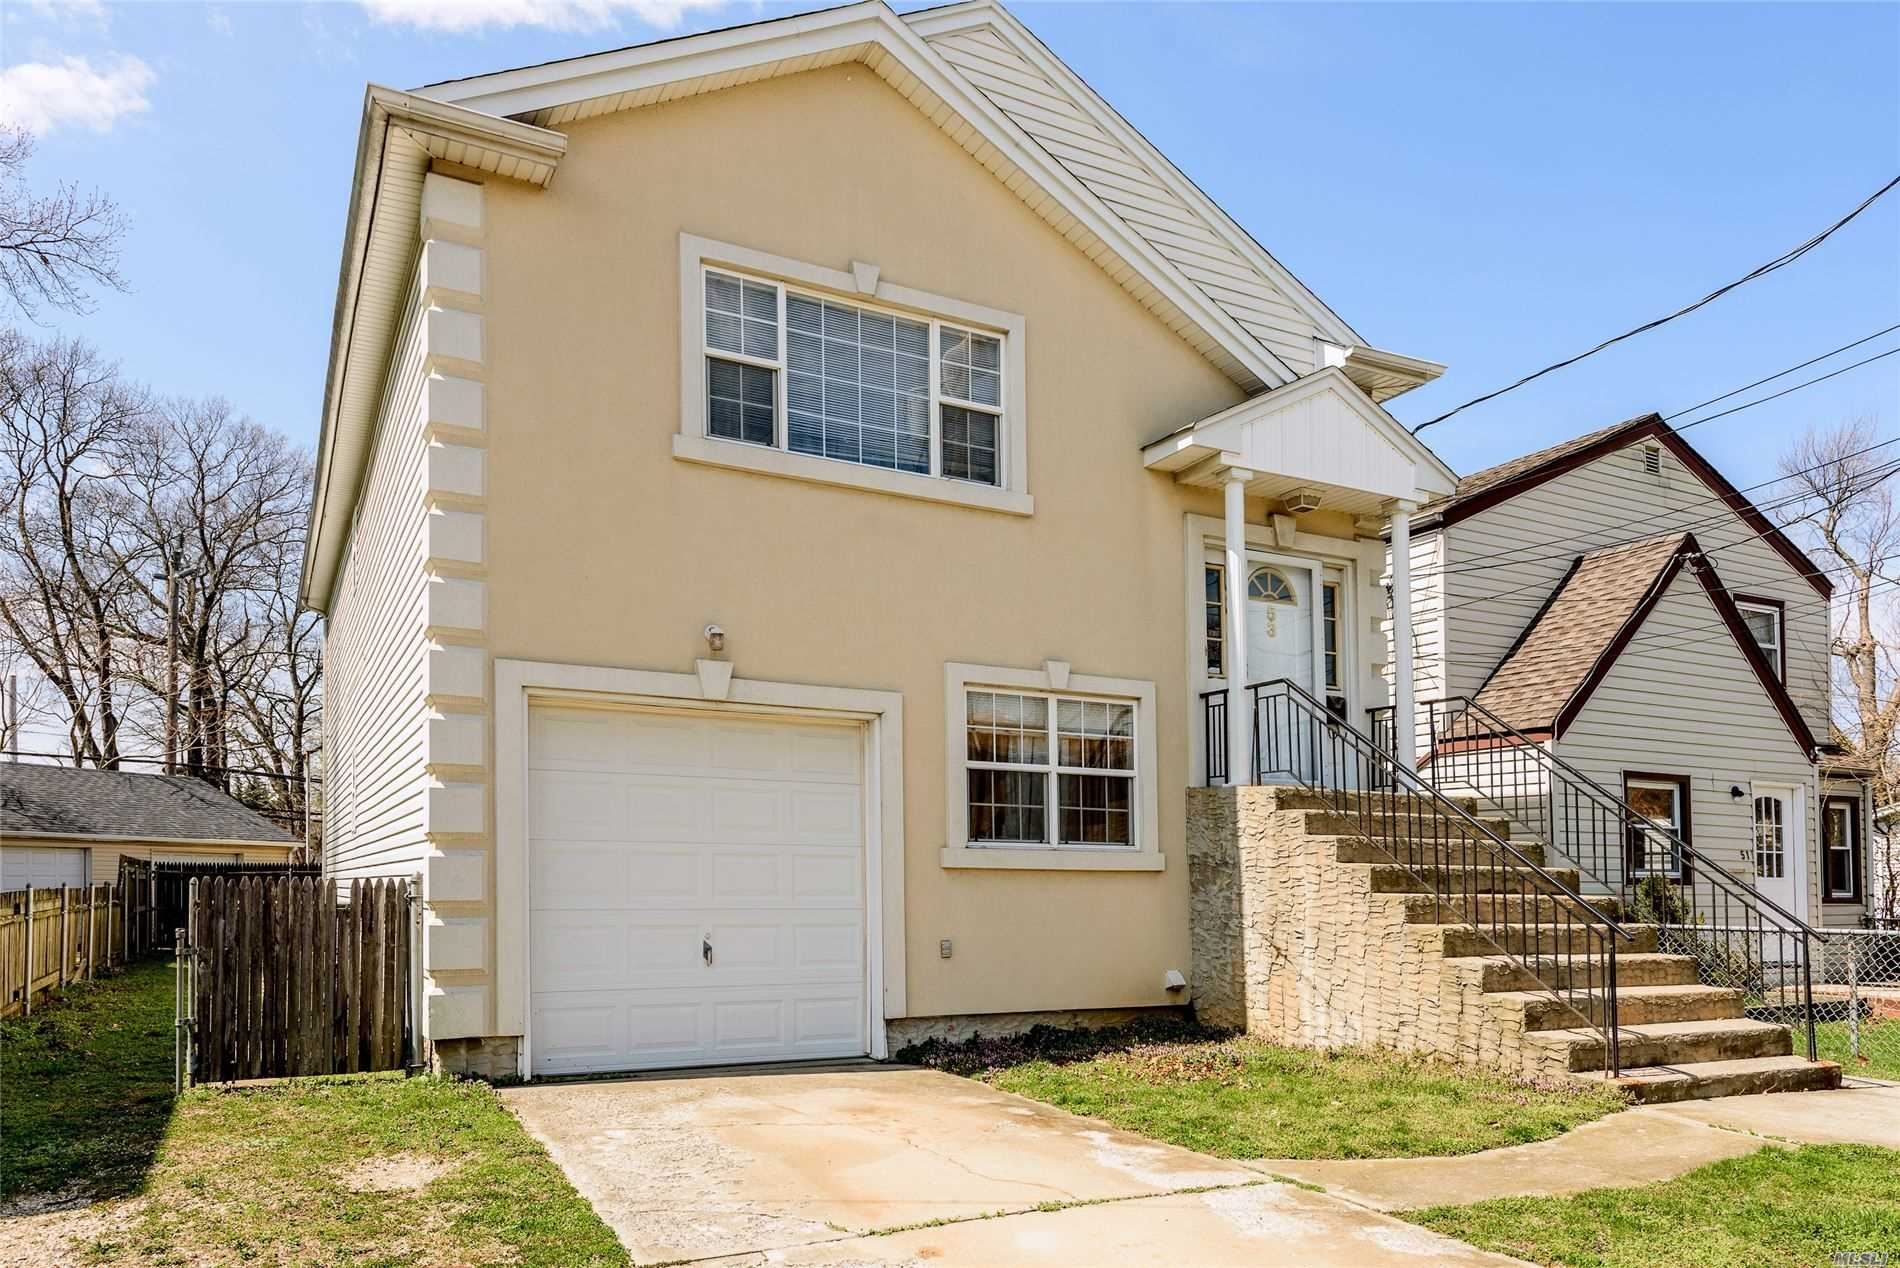 53 Plainfield Avenue, East Rockaway, NY 11518 - MLS#: 3168882